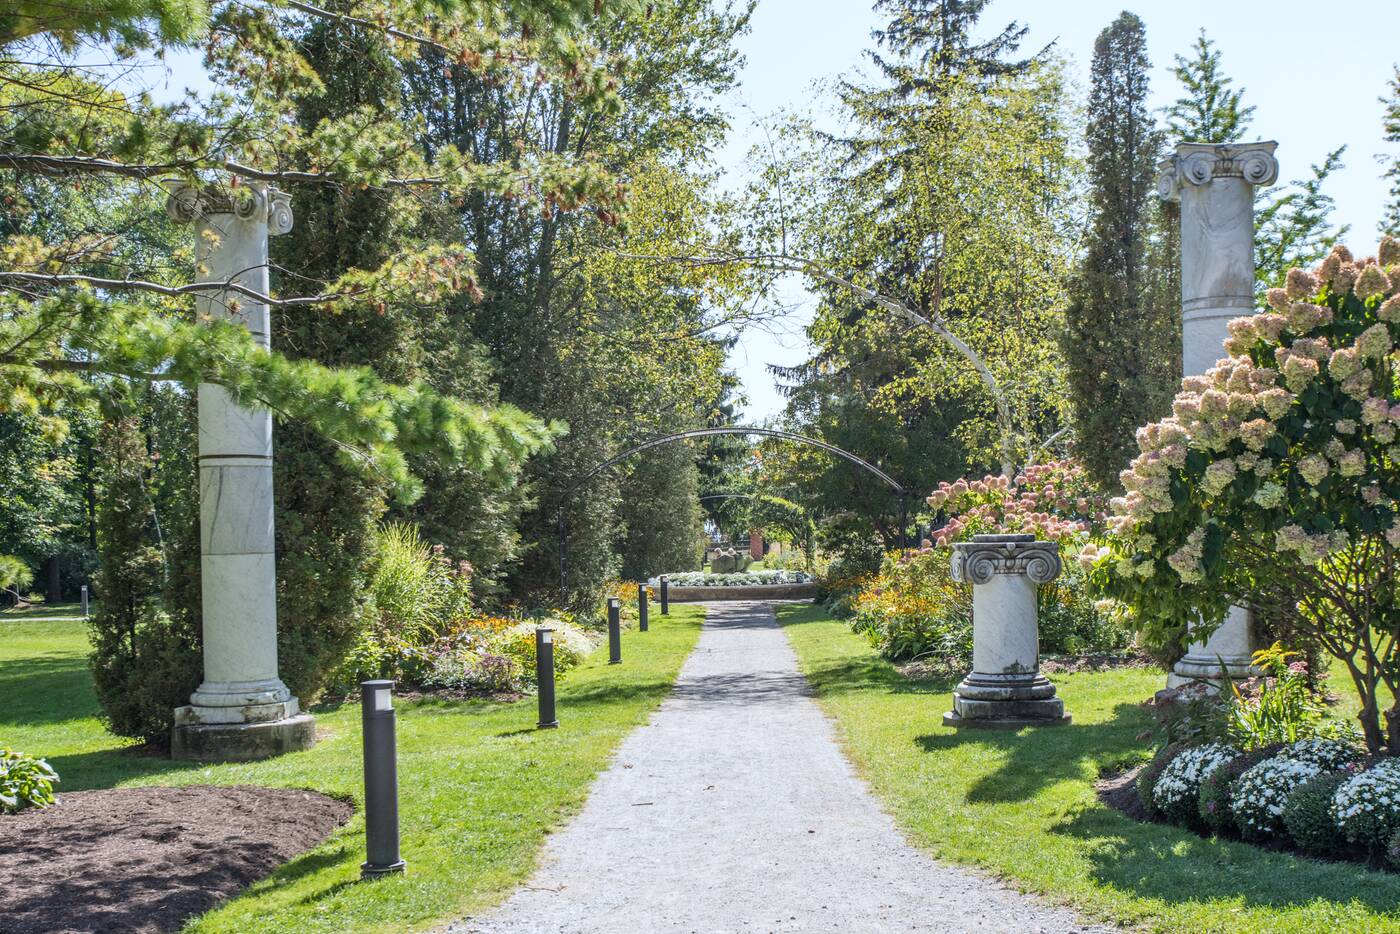 guild park and gardens